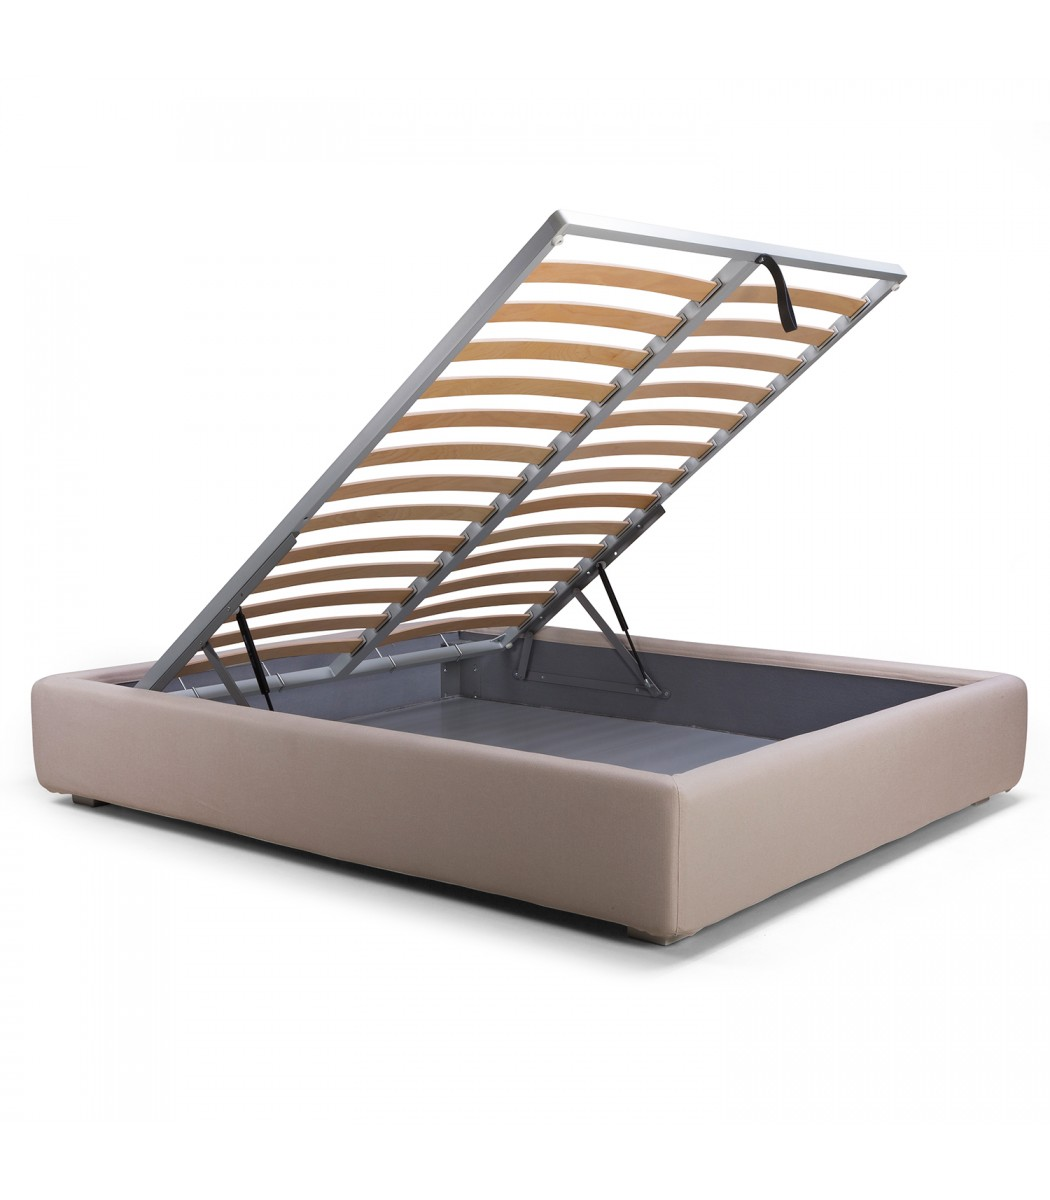 Letto sommier gold contenitore - Letto sommier 140x200 ...